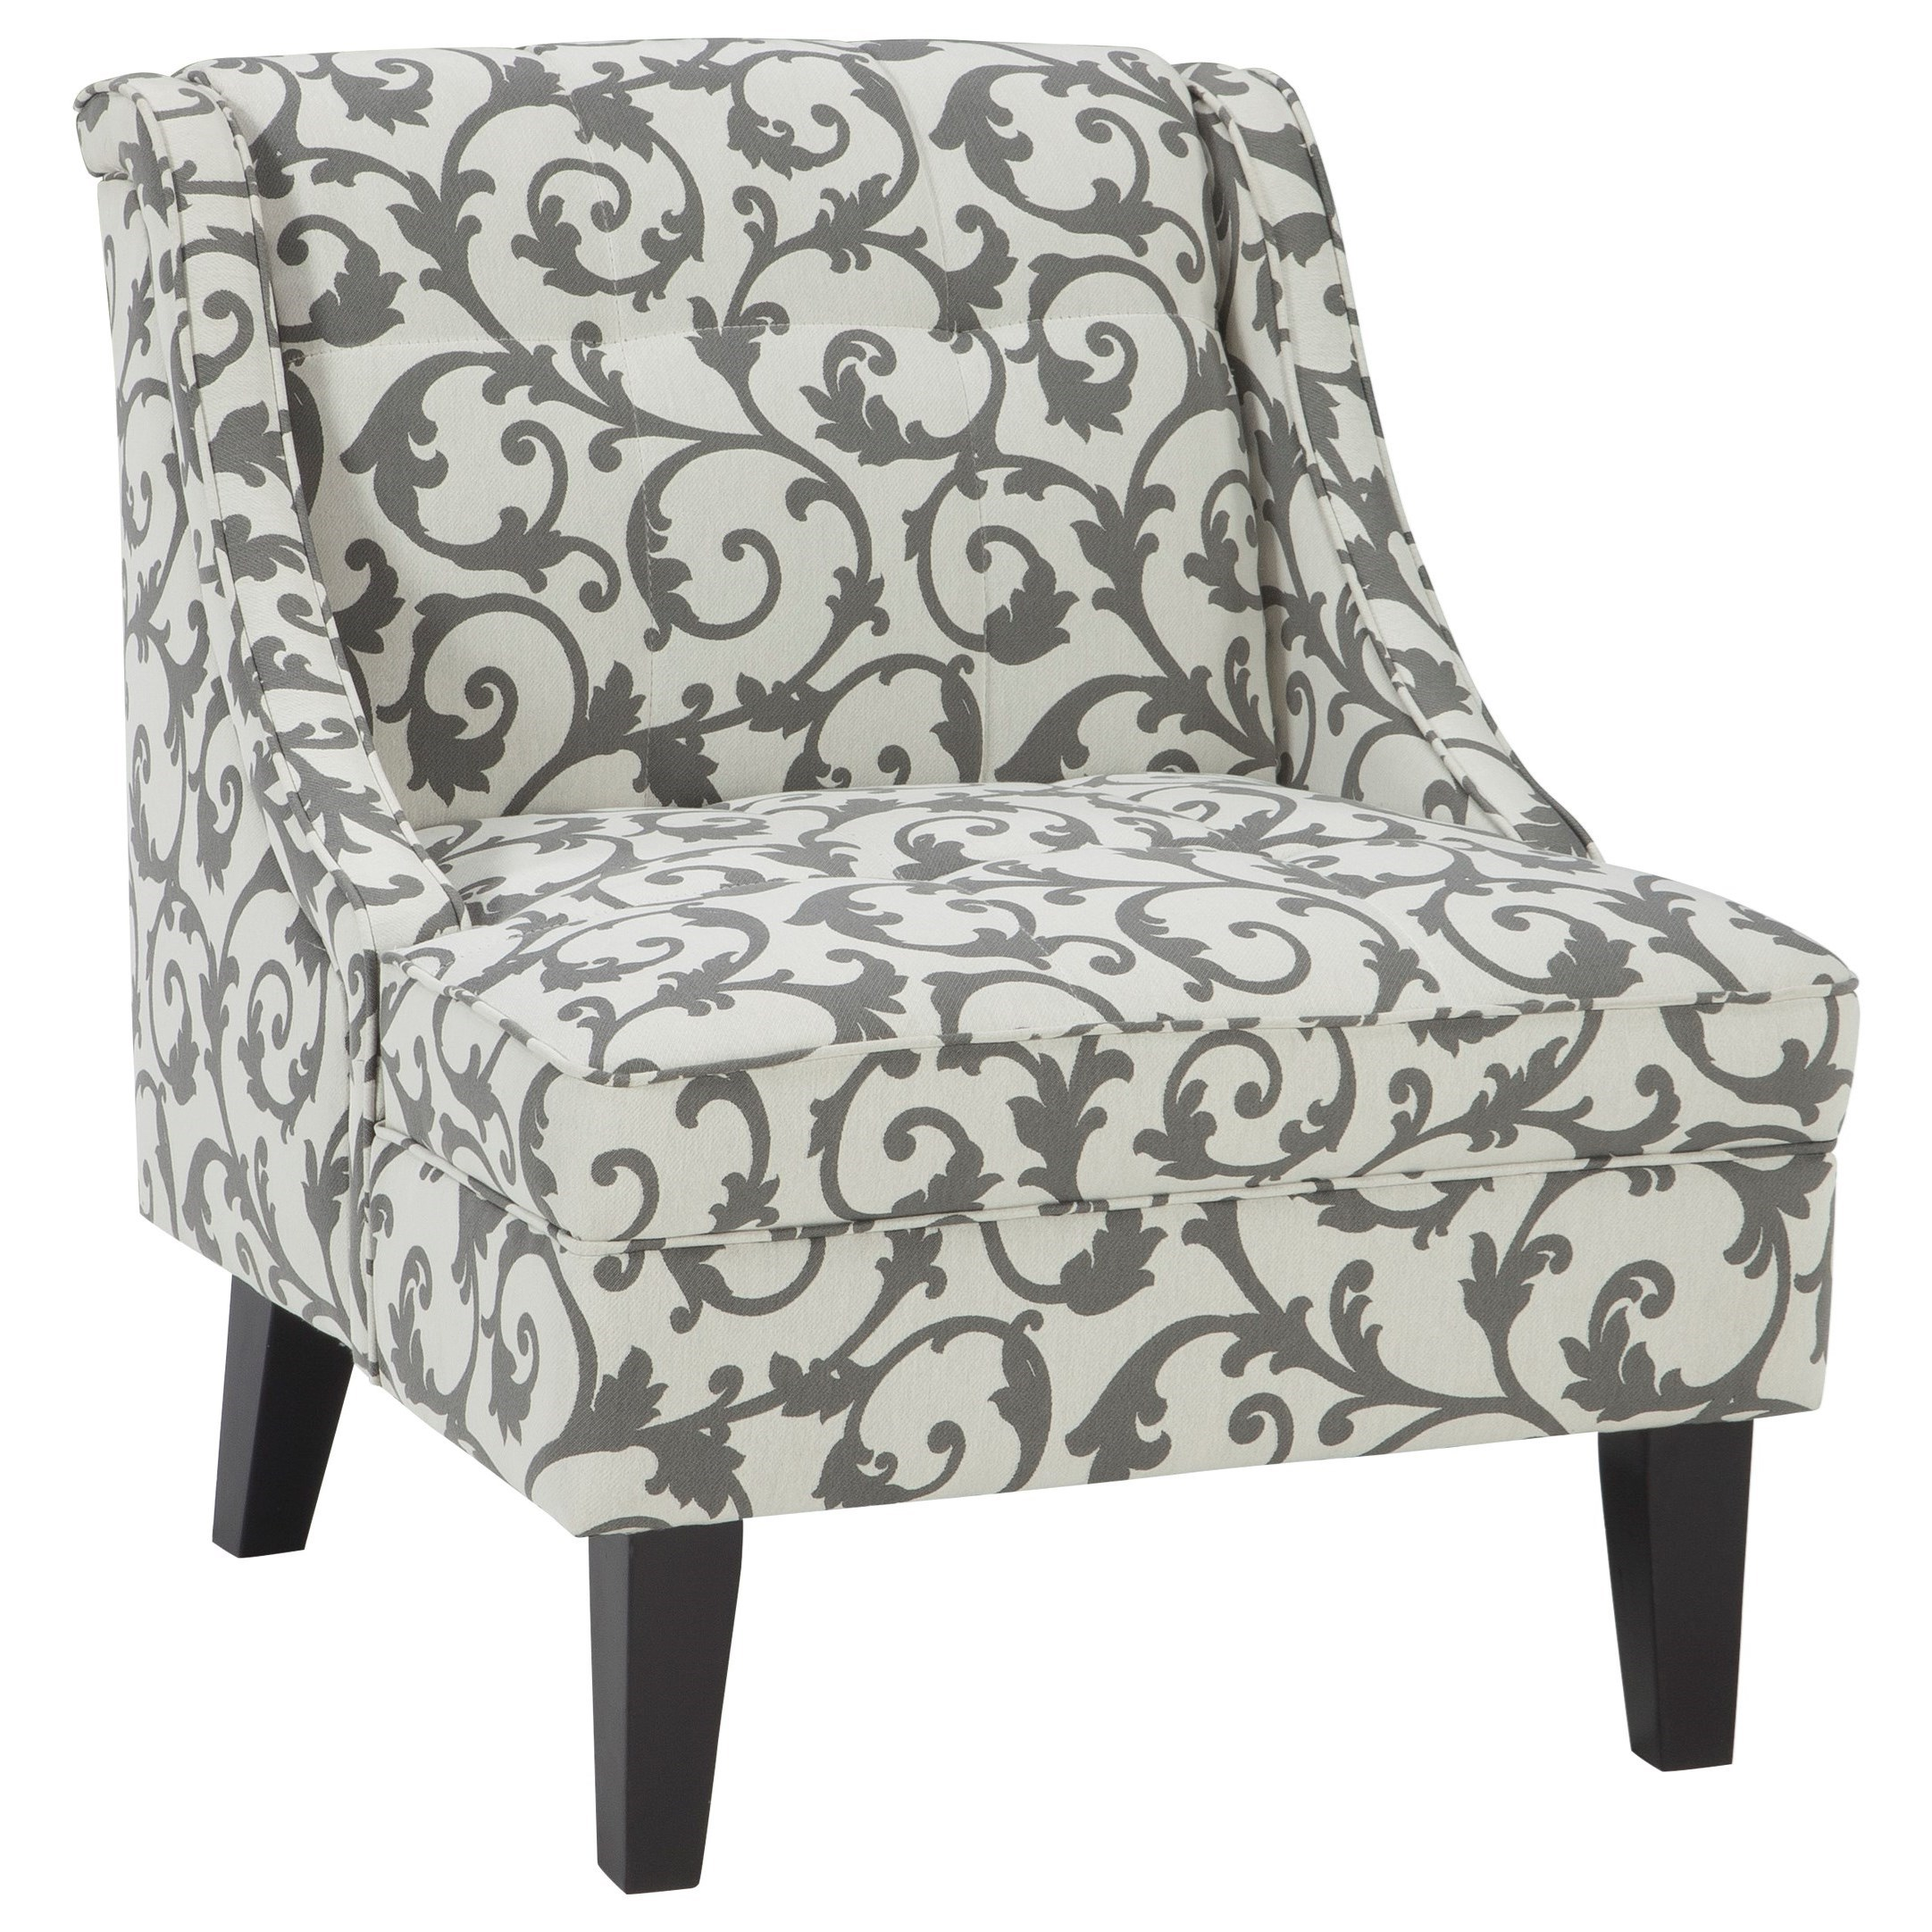 Ashley Furniture Kexlor Accent Chair  Rifes Home